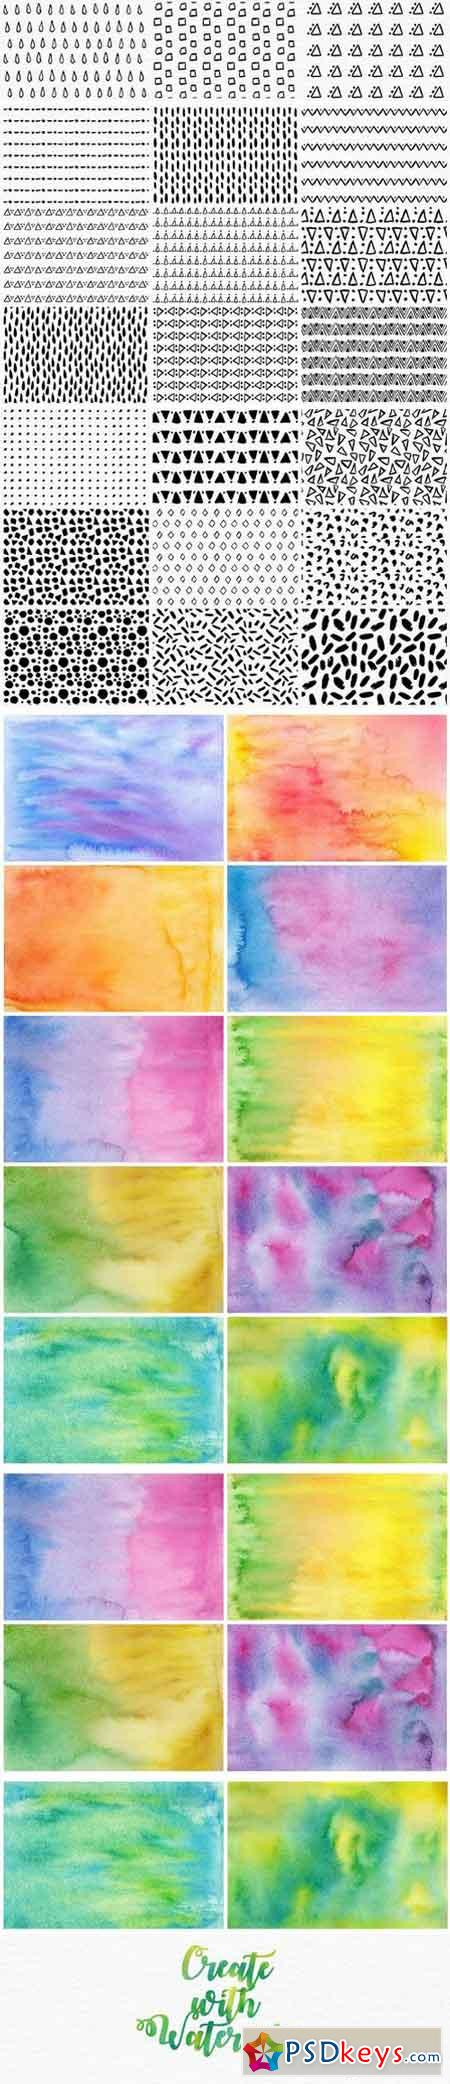 Watercolor Patterns & Textures Kit 1620304